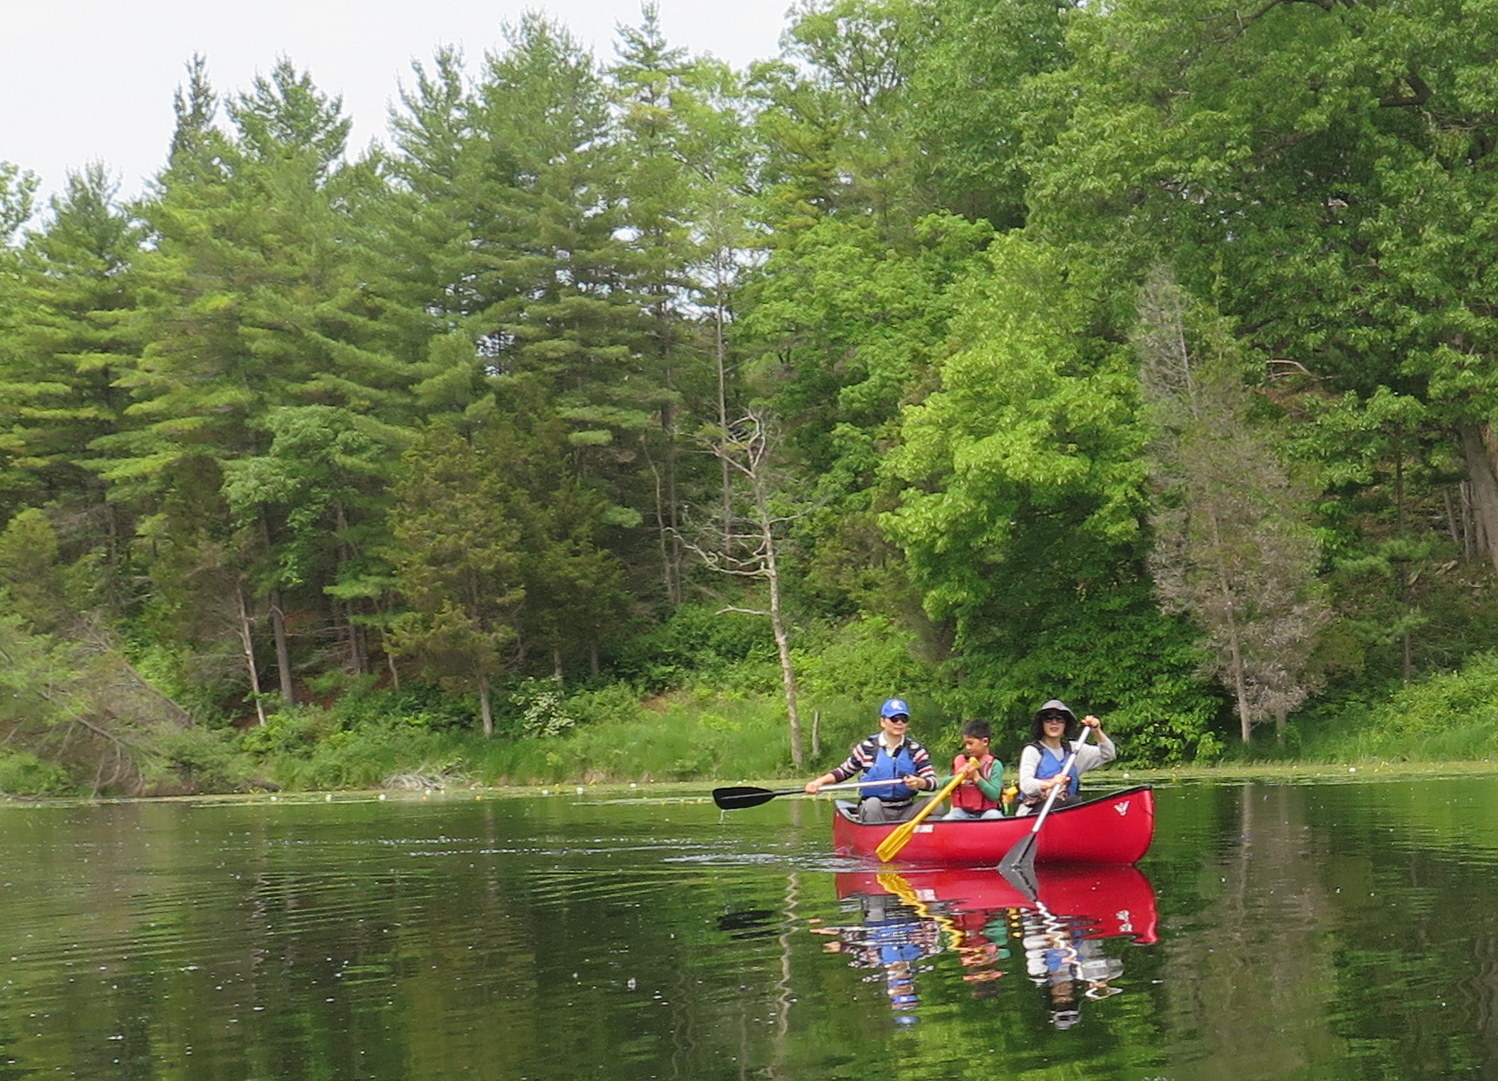 A family takes in a canoe trip in Pinery Provincial Park, just south of Grand Bend. JIM BYERS PHOTO